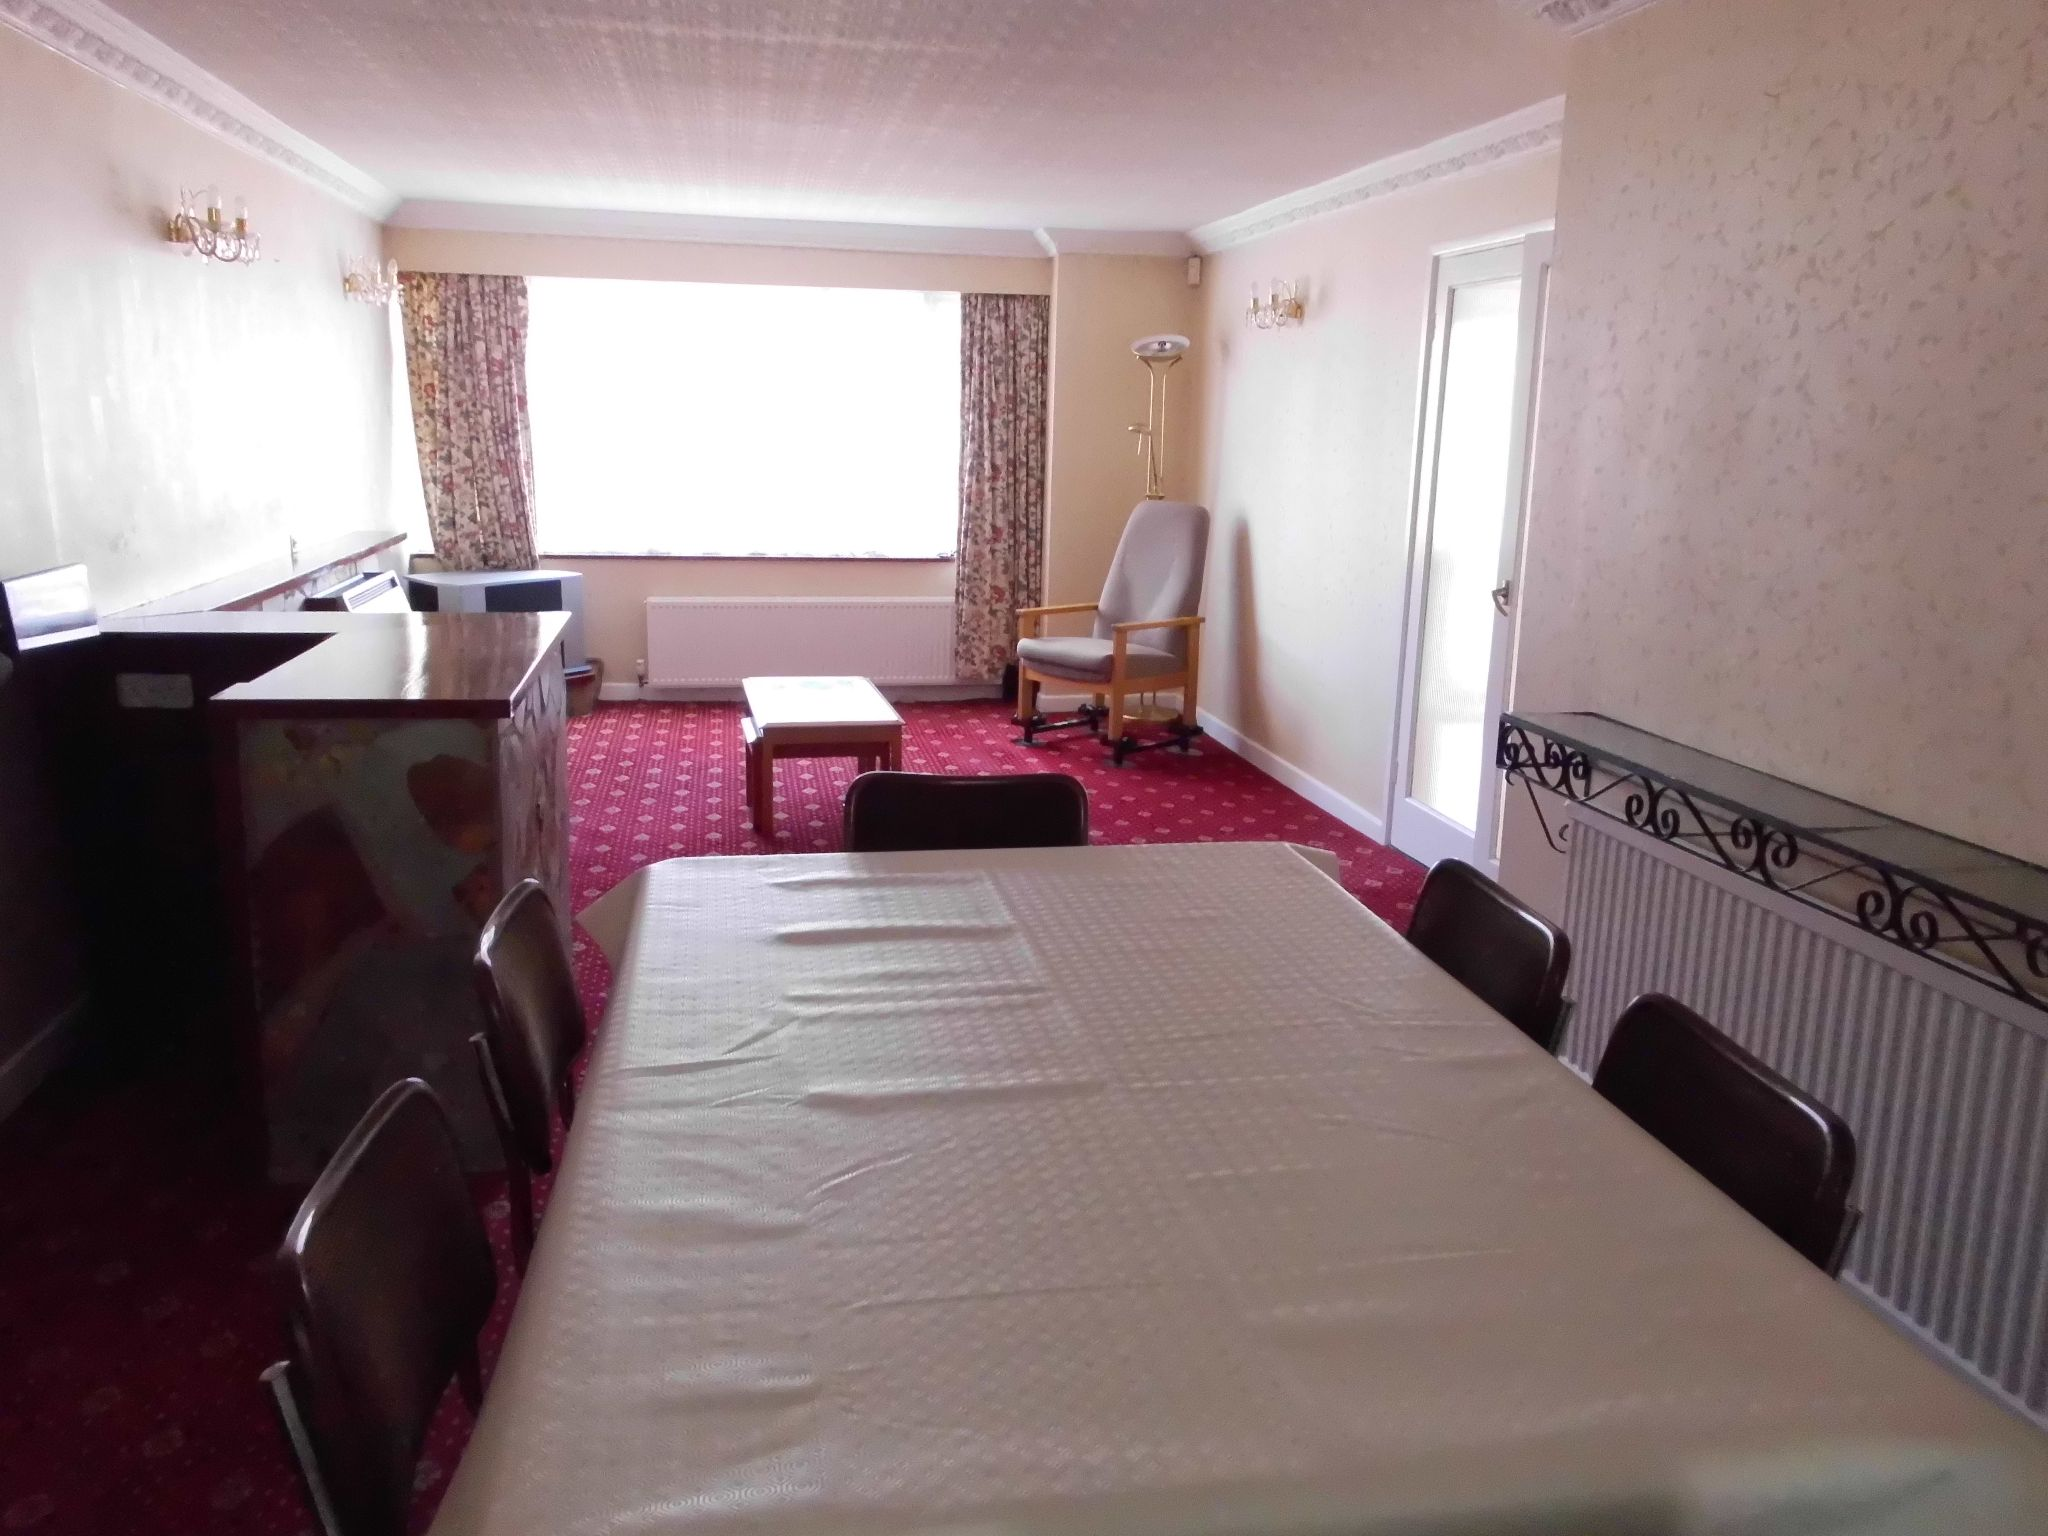 4 bedroom detached house To Let in Leicester - Photograph 7.